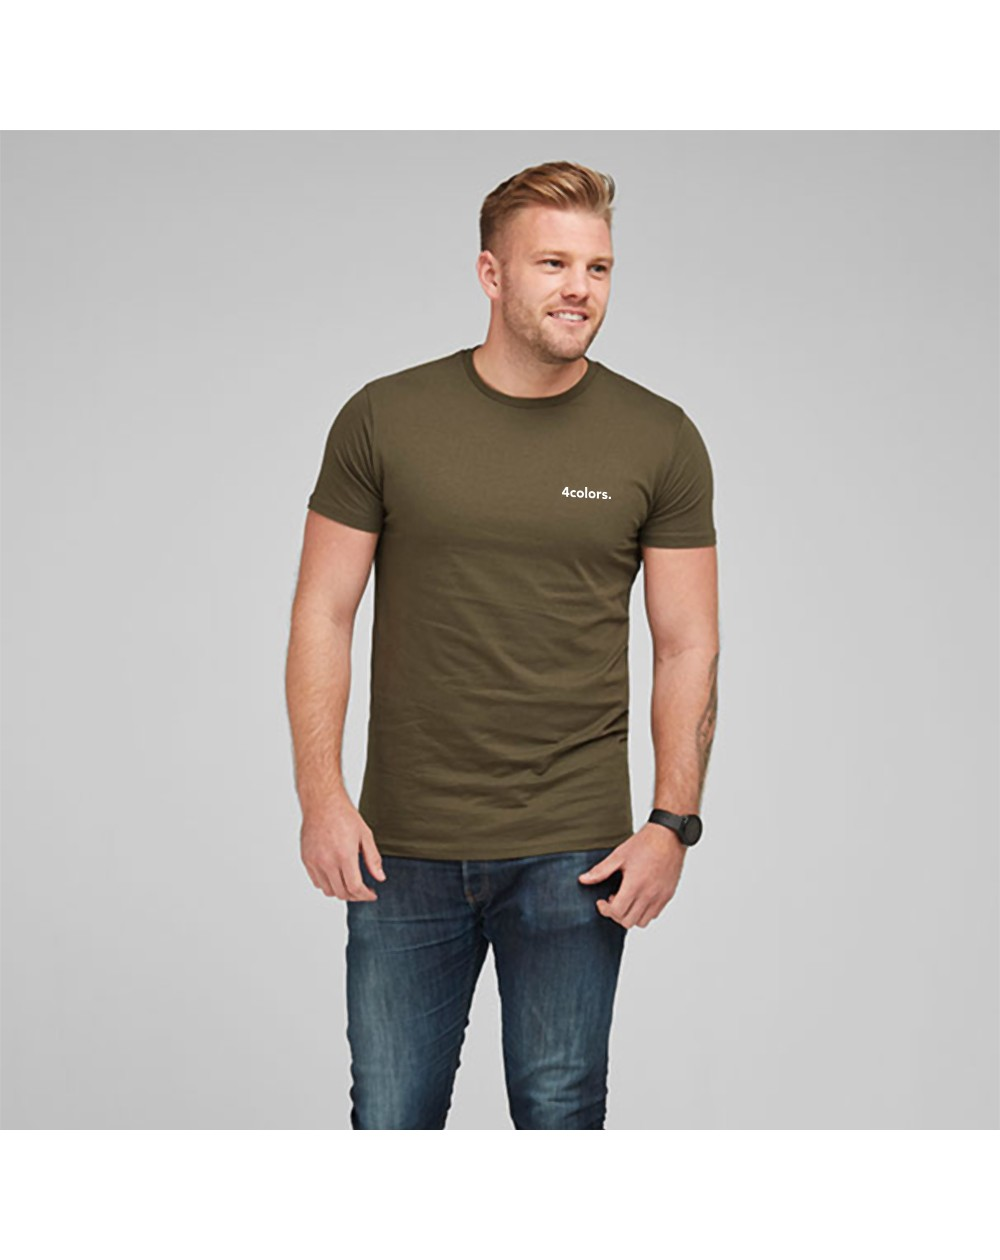 IMPRESSION T-SHIRT PERSONNALISE STANDARD 1